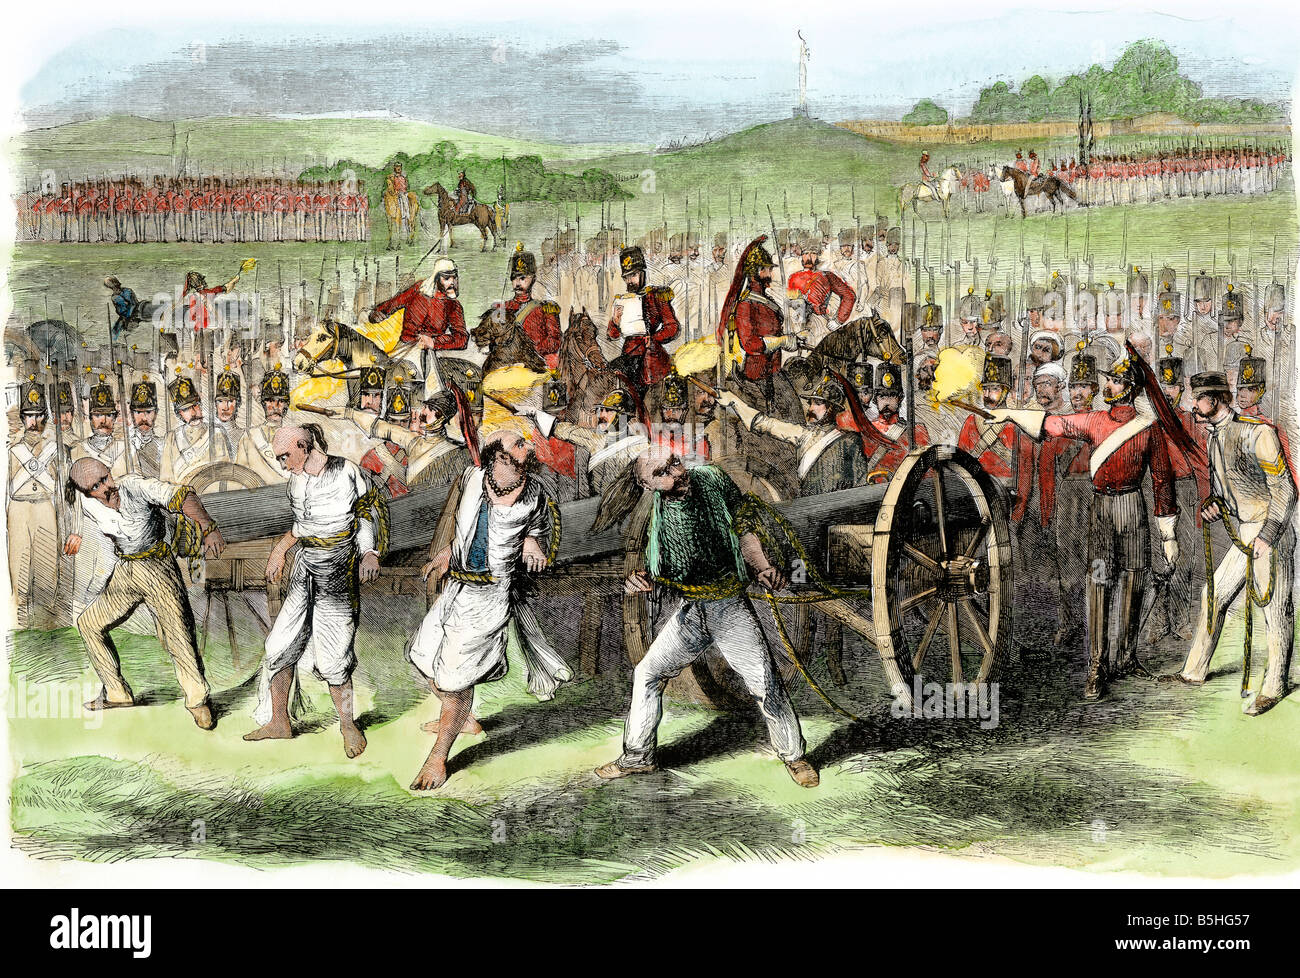 British military executing Sepoys by tying them to cannons during the rebeliion in India 1857. Hand-colored woodcut - Stock Image